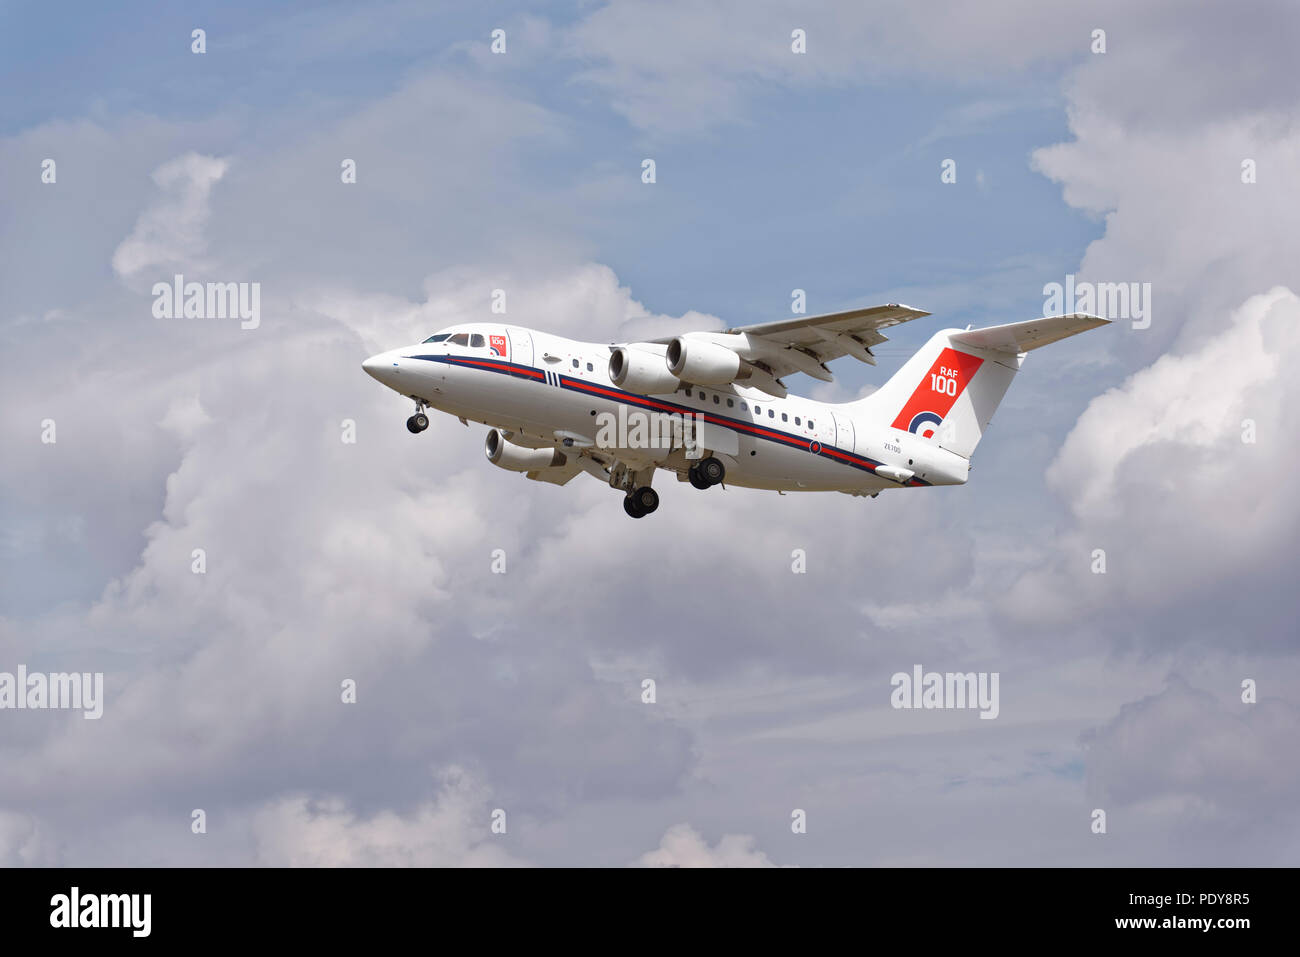 British Royal Air Force four engined transport aircraft a BAE 146 departs RAF Fairford after attending the Royal International Air Tattoo - Stock Image